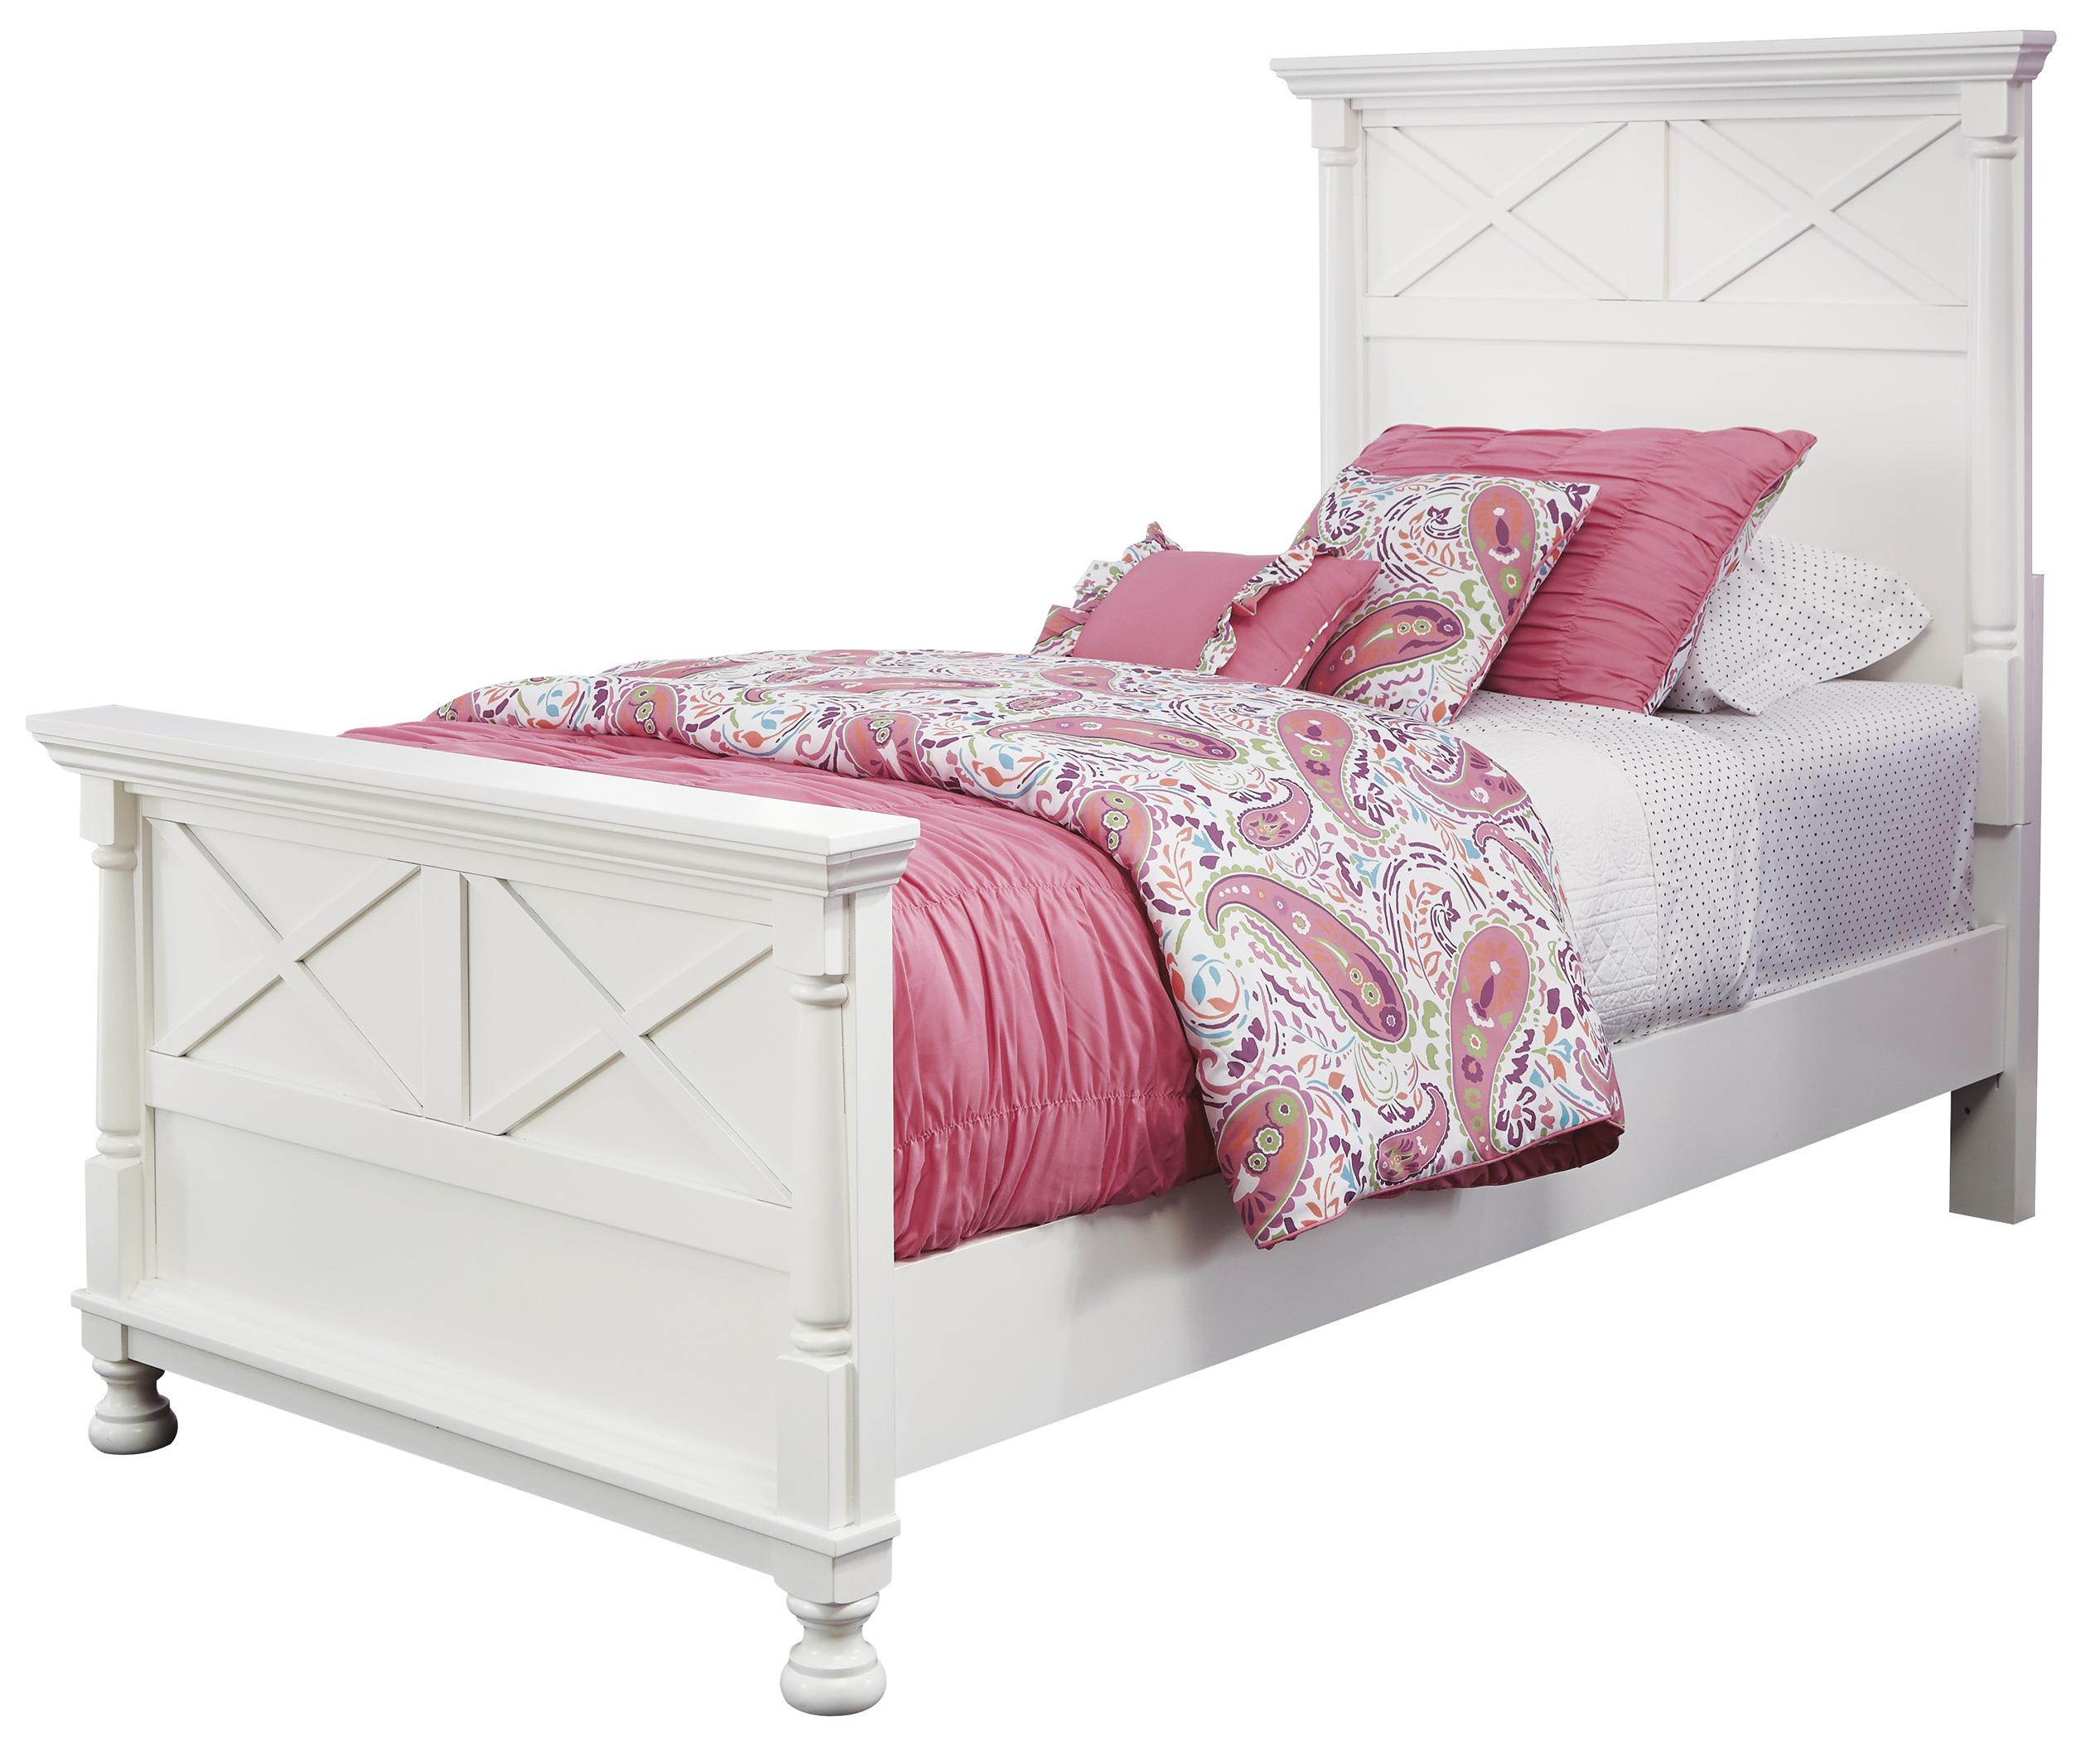 Signature Design by Ashley Kaslyn Twin Panel Bed - Item Number: B502-53+52+83